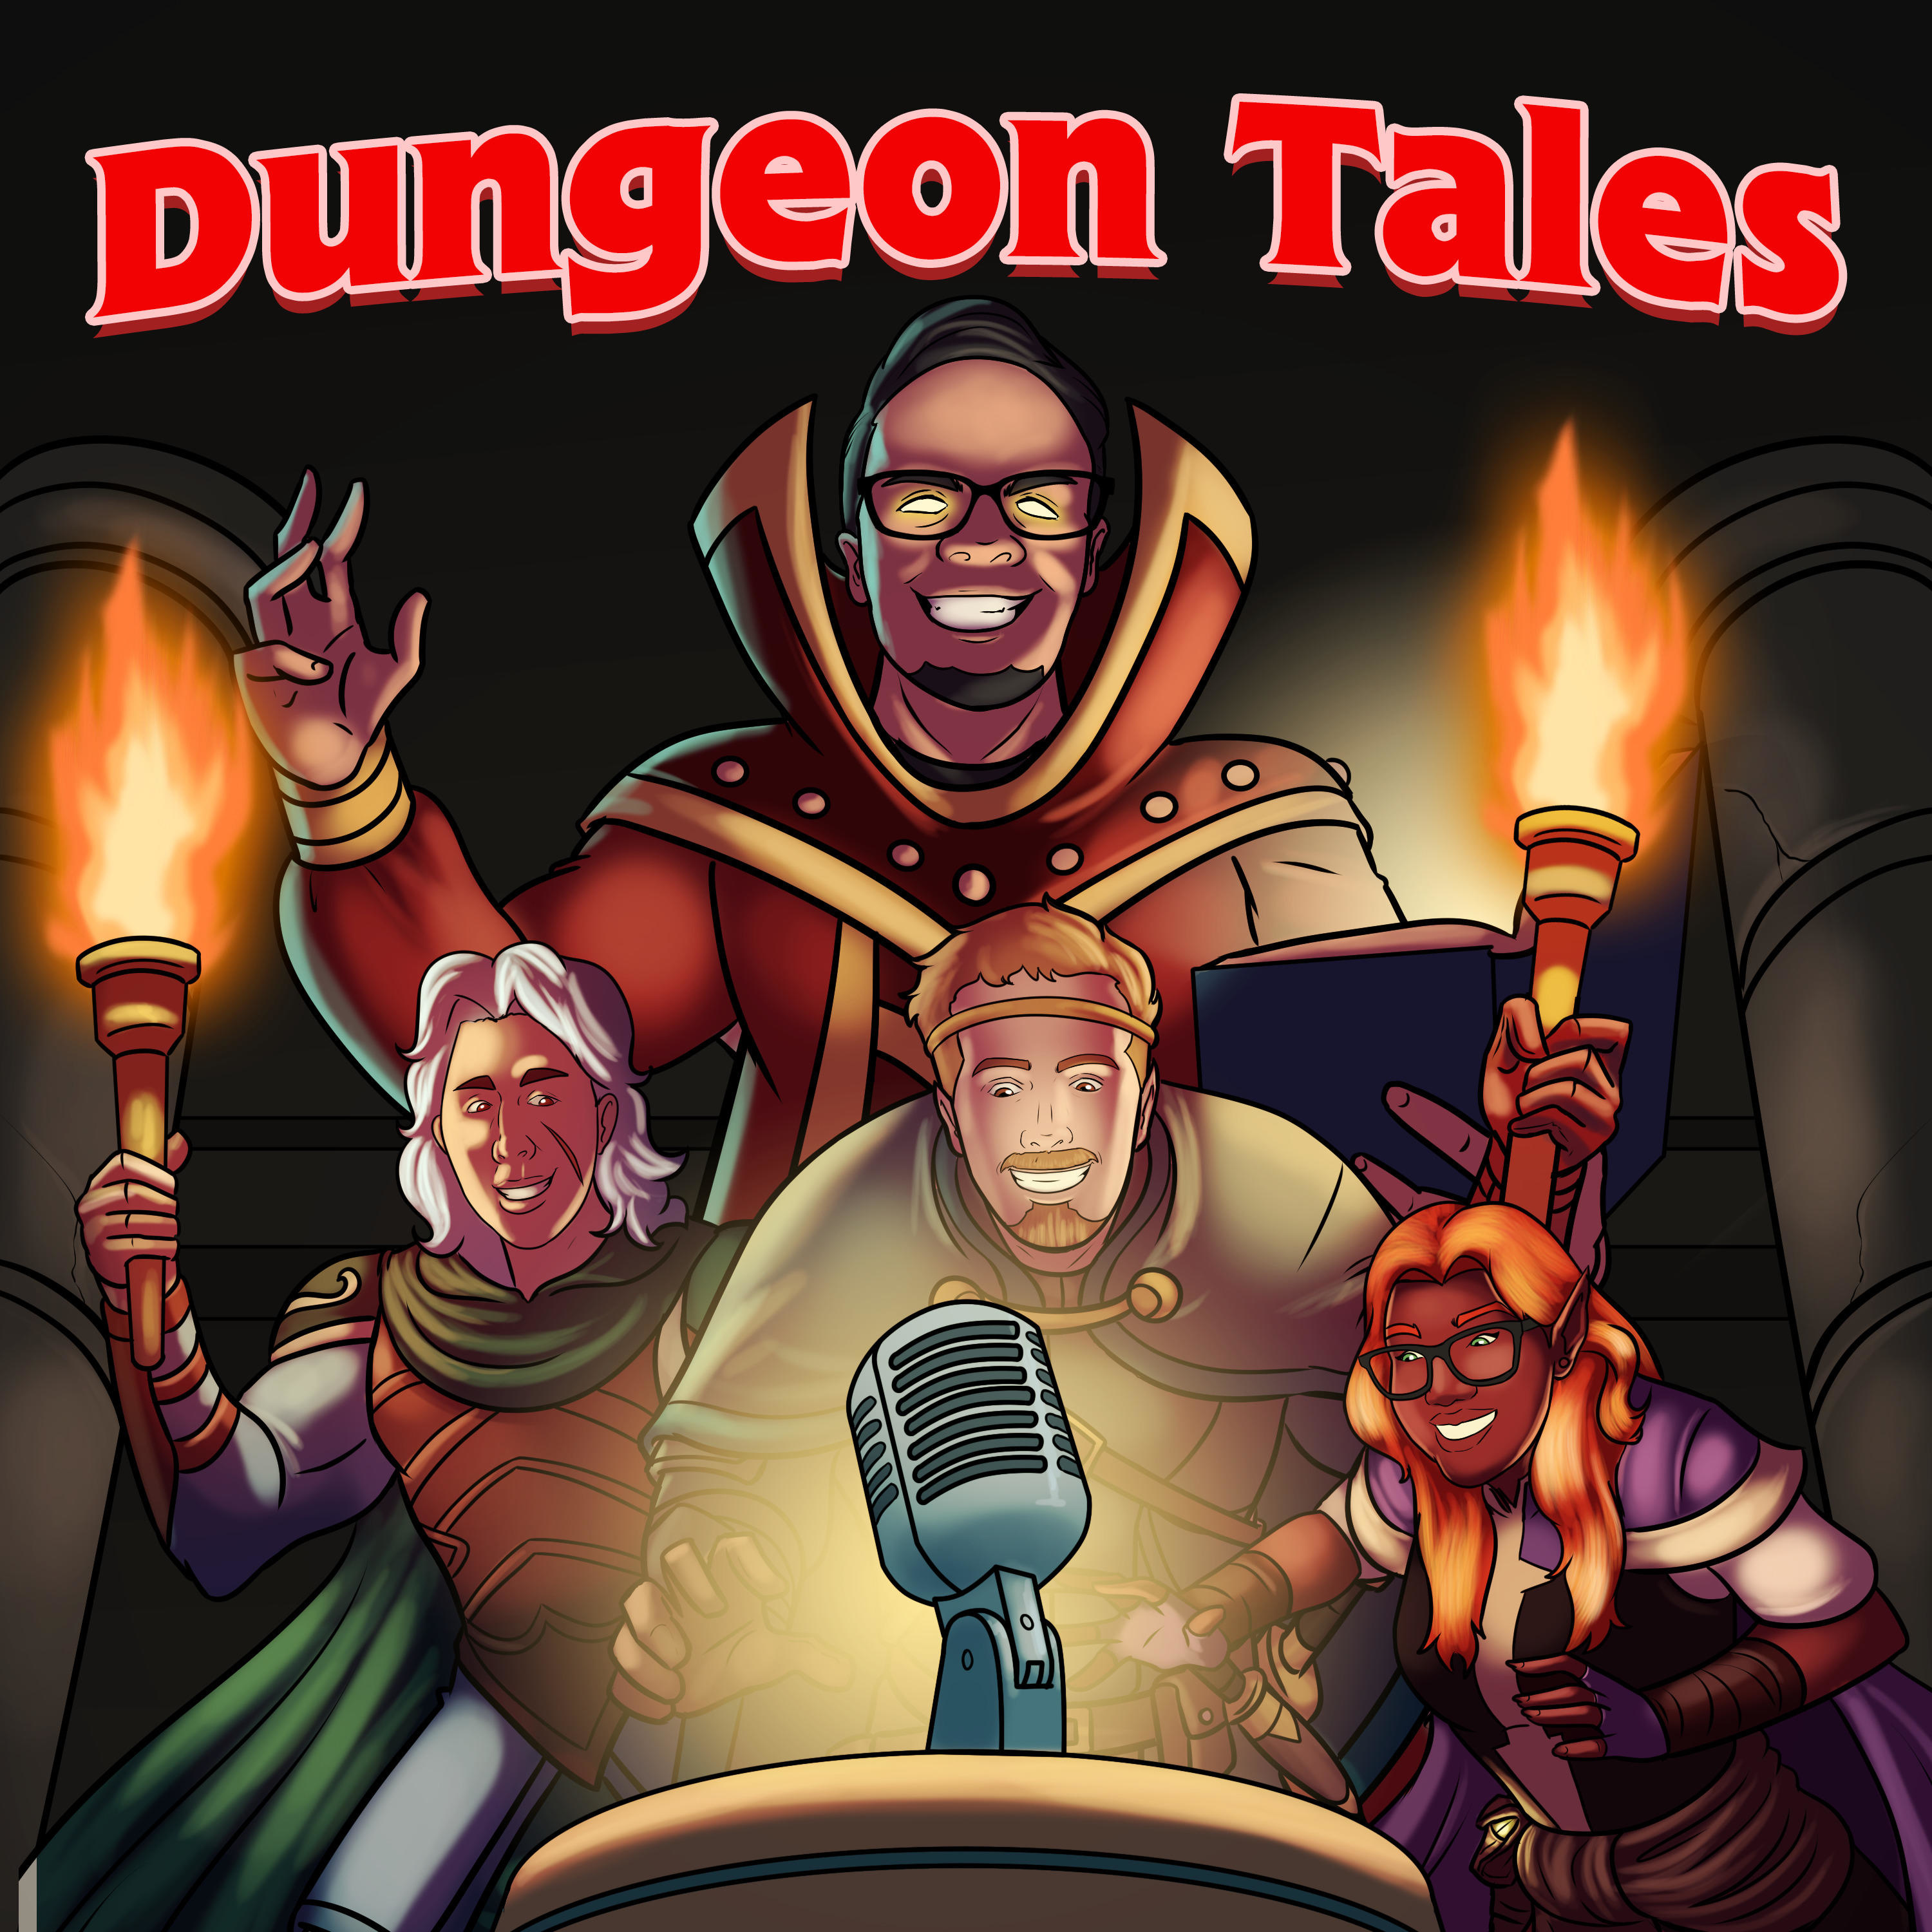 Dungeon Tales